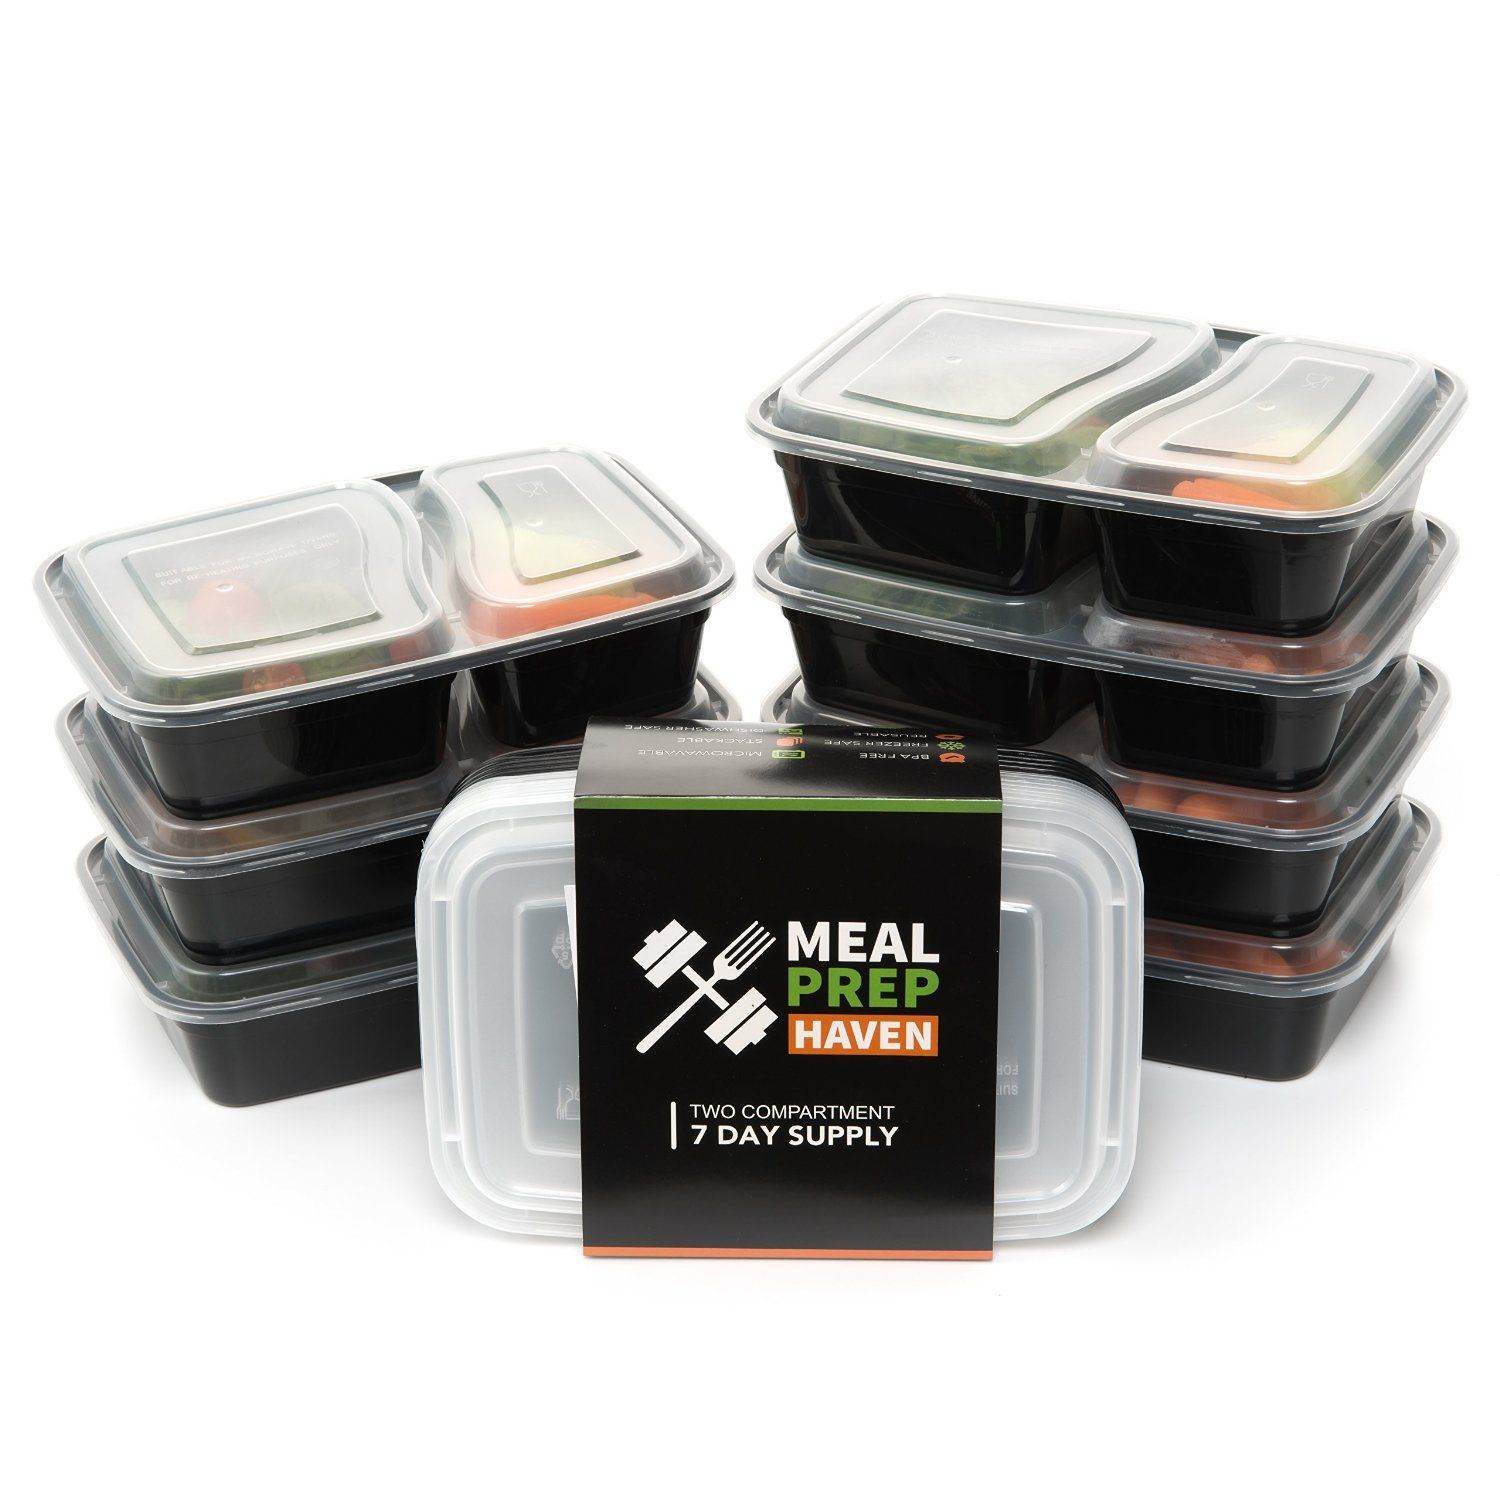 Meal Prep Food Containers Lunch Box Microwave Safe 2 Compartment Bento 7 pcs 1